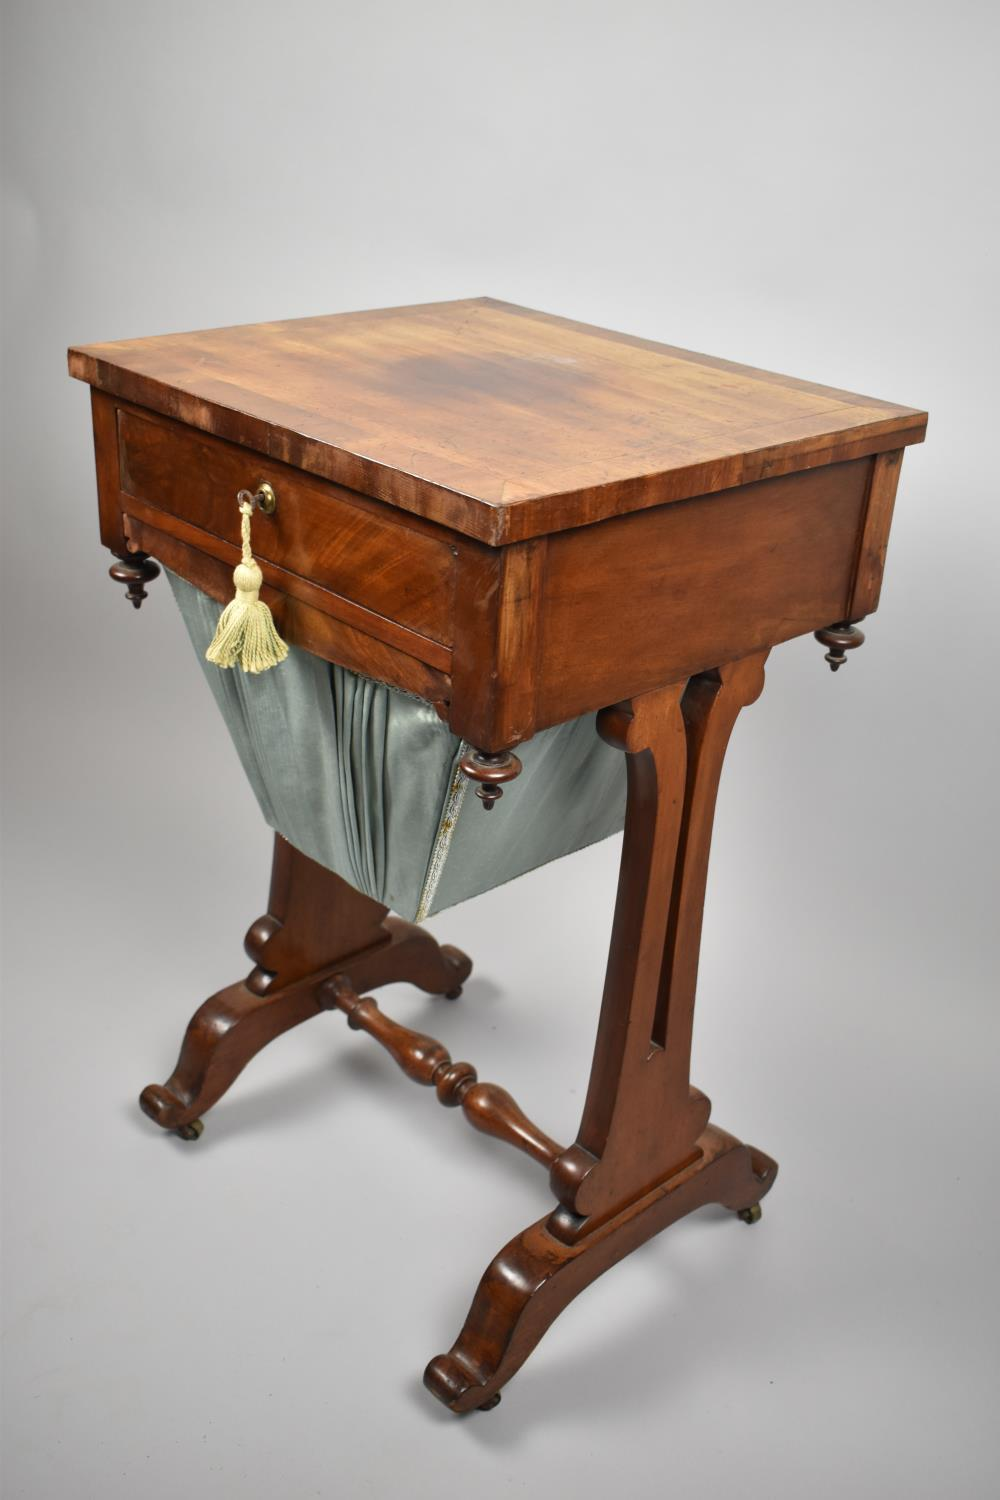 A Regency Mahogany Work Table with Single Top Drawer Over Wool Slide, Pierced Supports and Turned - Image 3 of 3